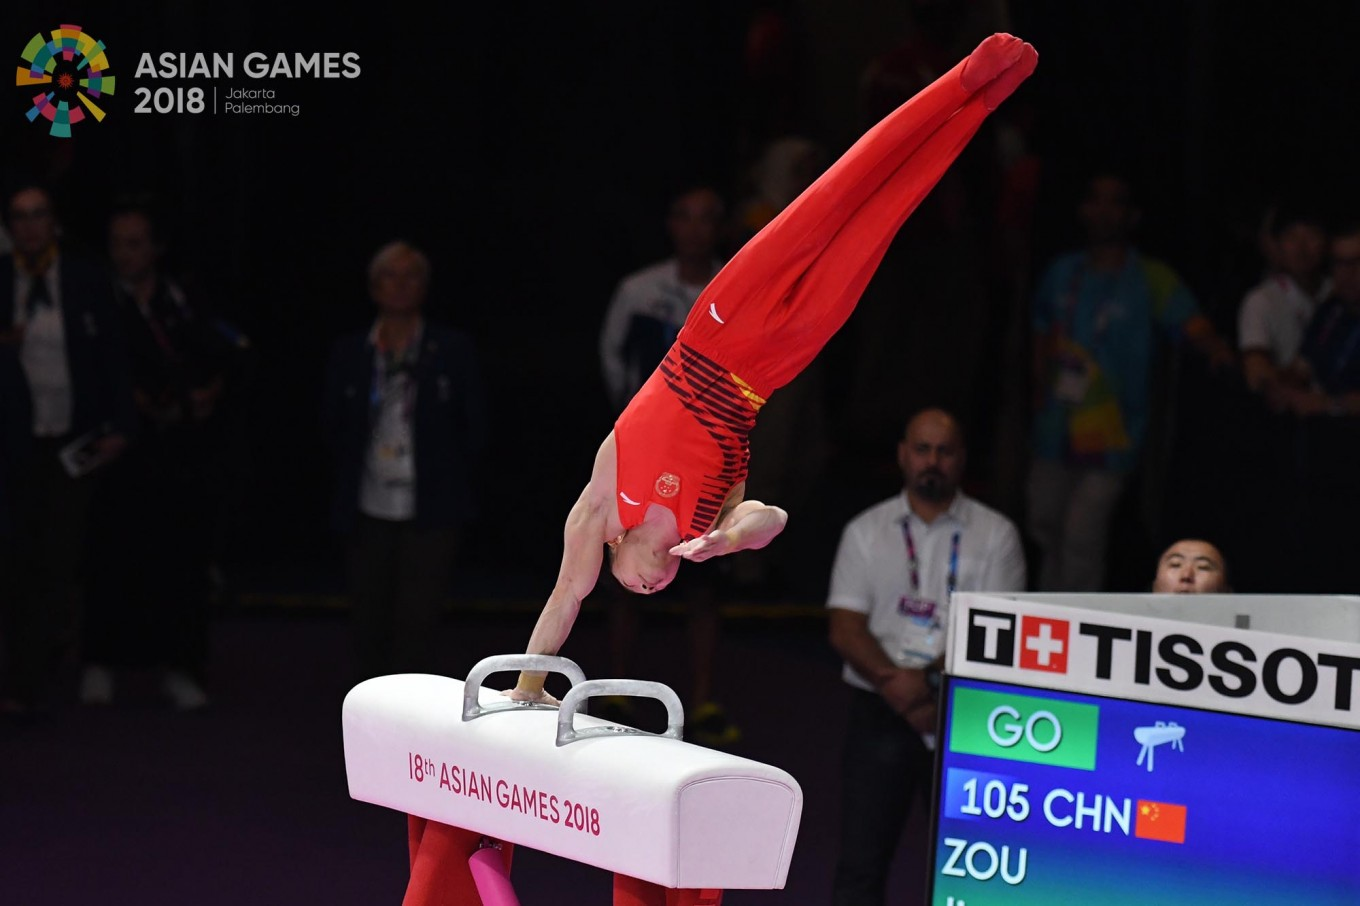 China's Jingyuan Zou competes on the pommel horse competition in the final at the artistic gymnastics event during the 2018 Asian Games in Jakarta on August.23. Inasgoc via Antara/ Wendra Ajistyatama